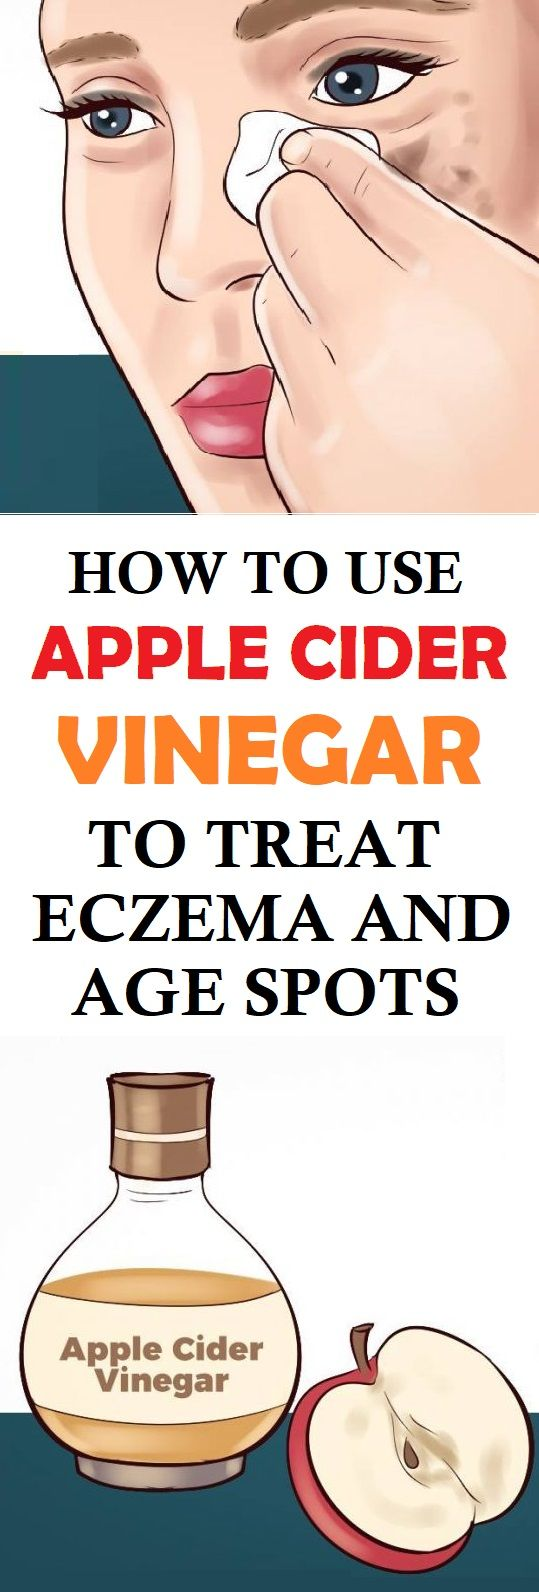 How to Use Apple Cider Vinegar to Treat Eczema and Age